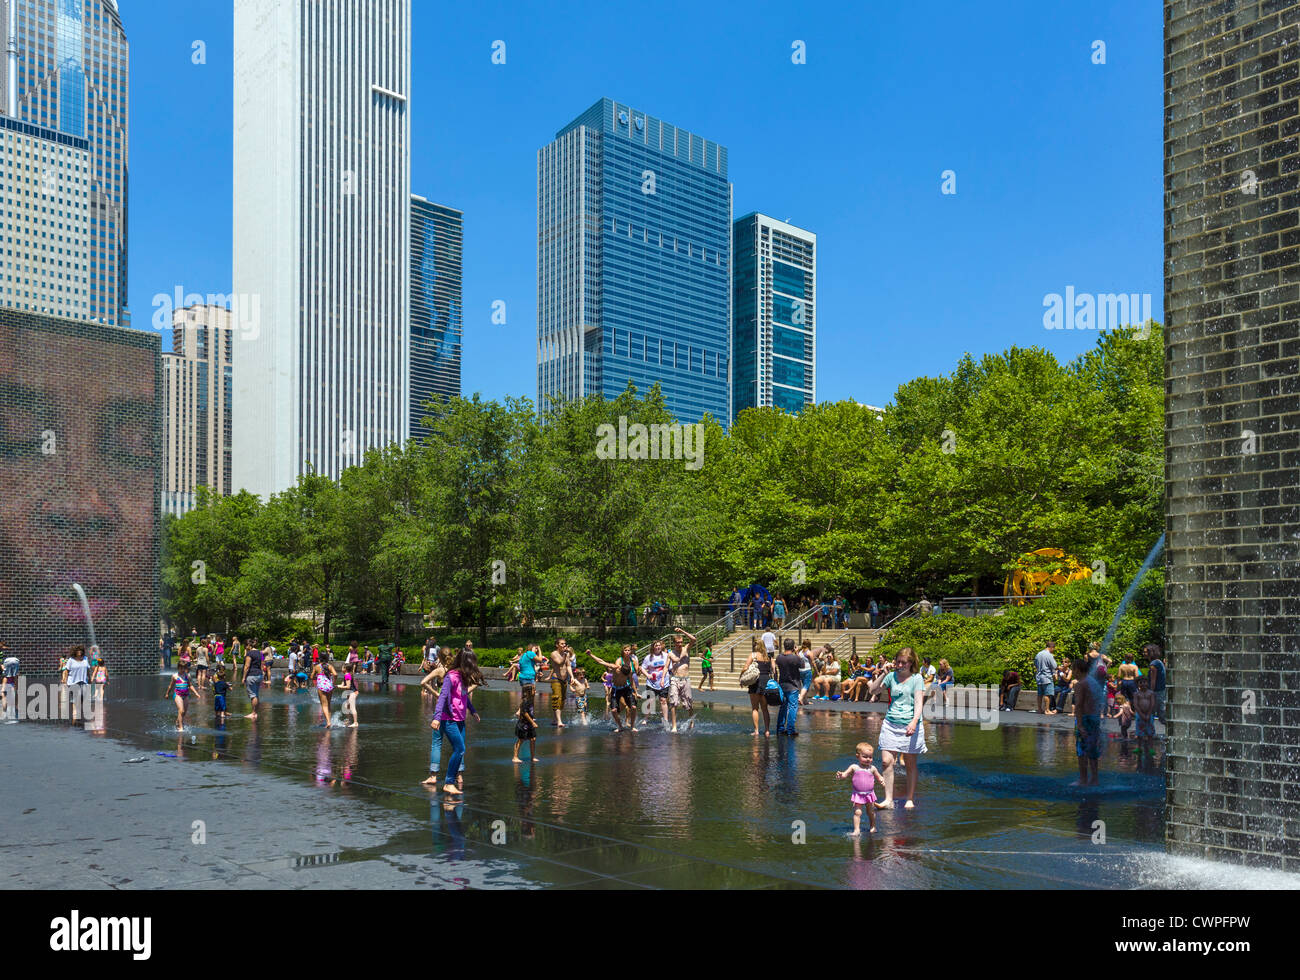 People cooling off in Crown Fountain in Millennium Park during an early summer heatwave, Chicago, Illinois - Stock Image